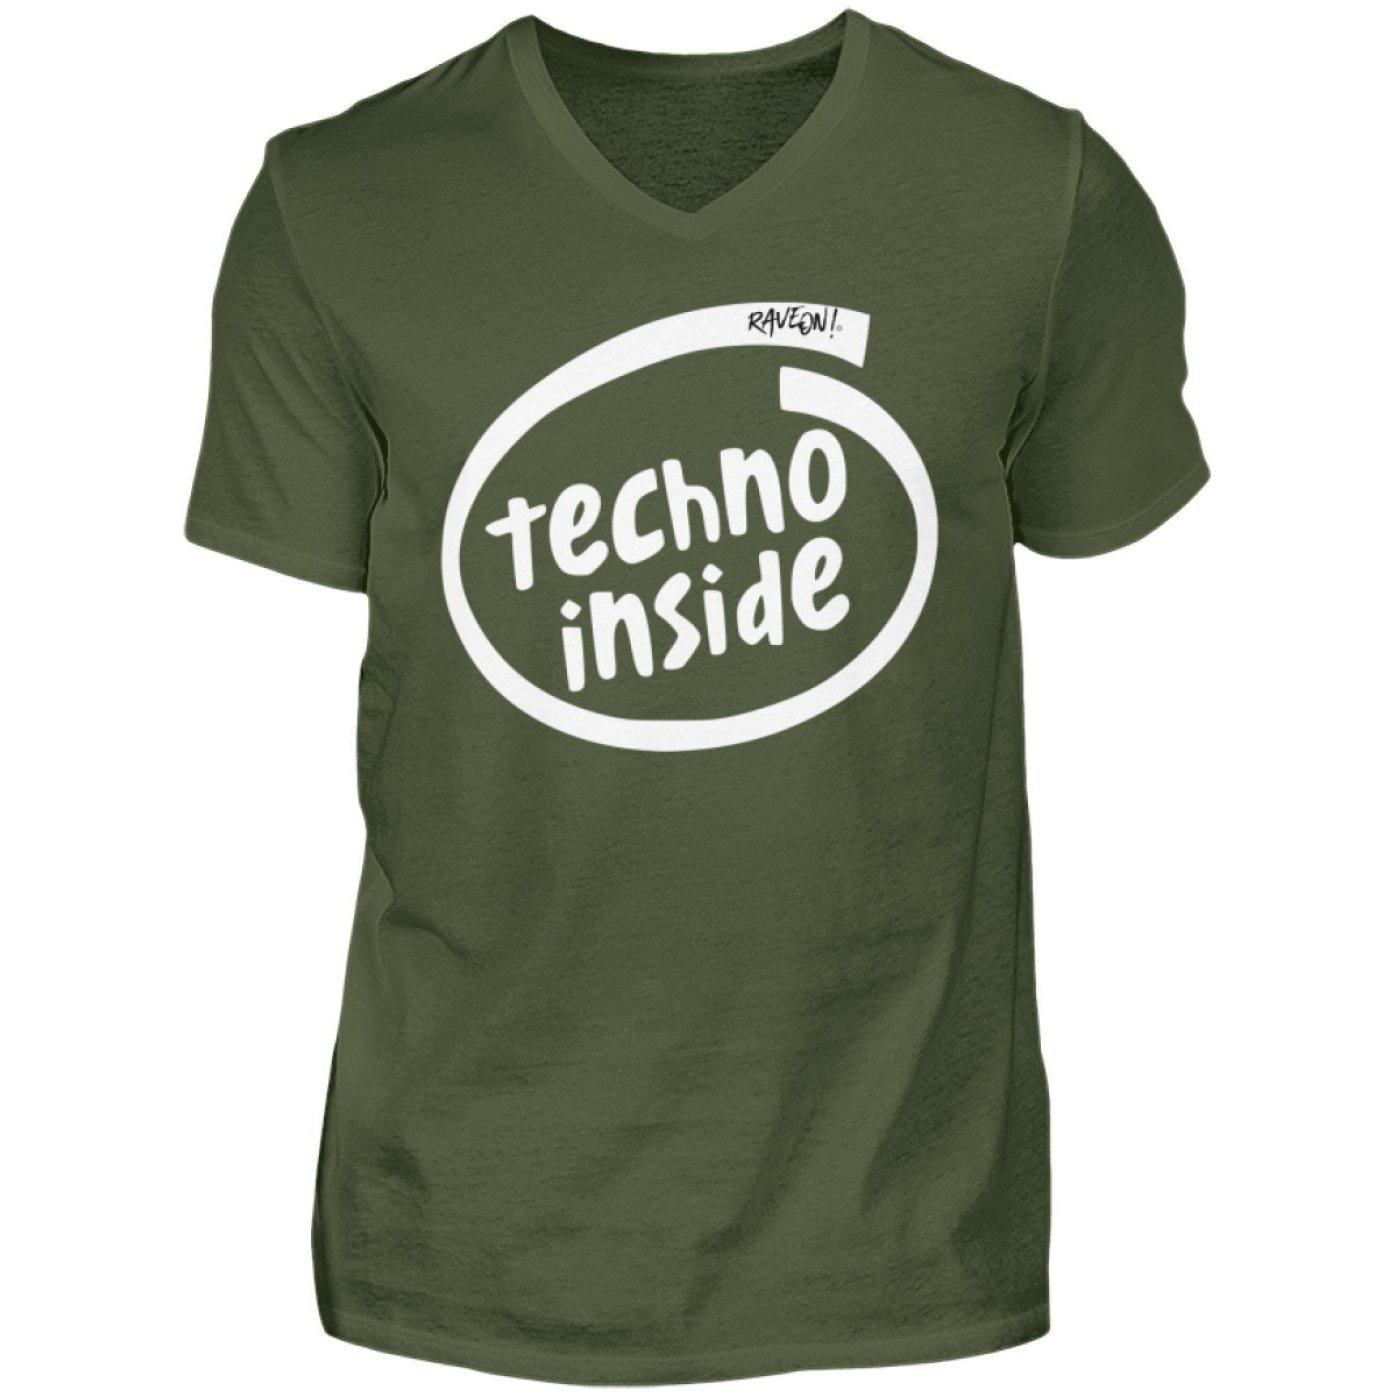 TECHNO INSIDE - Rave On!® - Herren V-Neck Shirt V-Neck Herrenshirt City Green / S - Rave On!® der Club & Techno Szene Shop für Coole Junge Mode Streetwear Style & Fashion Outfits + Sexy Festival 420 Stuff